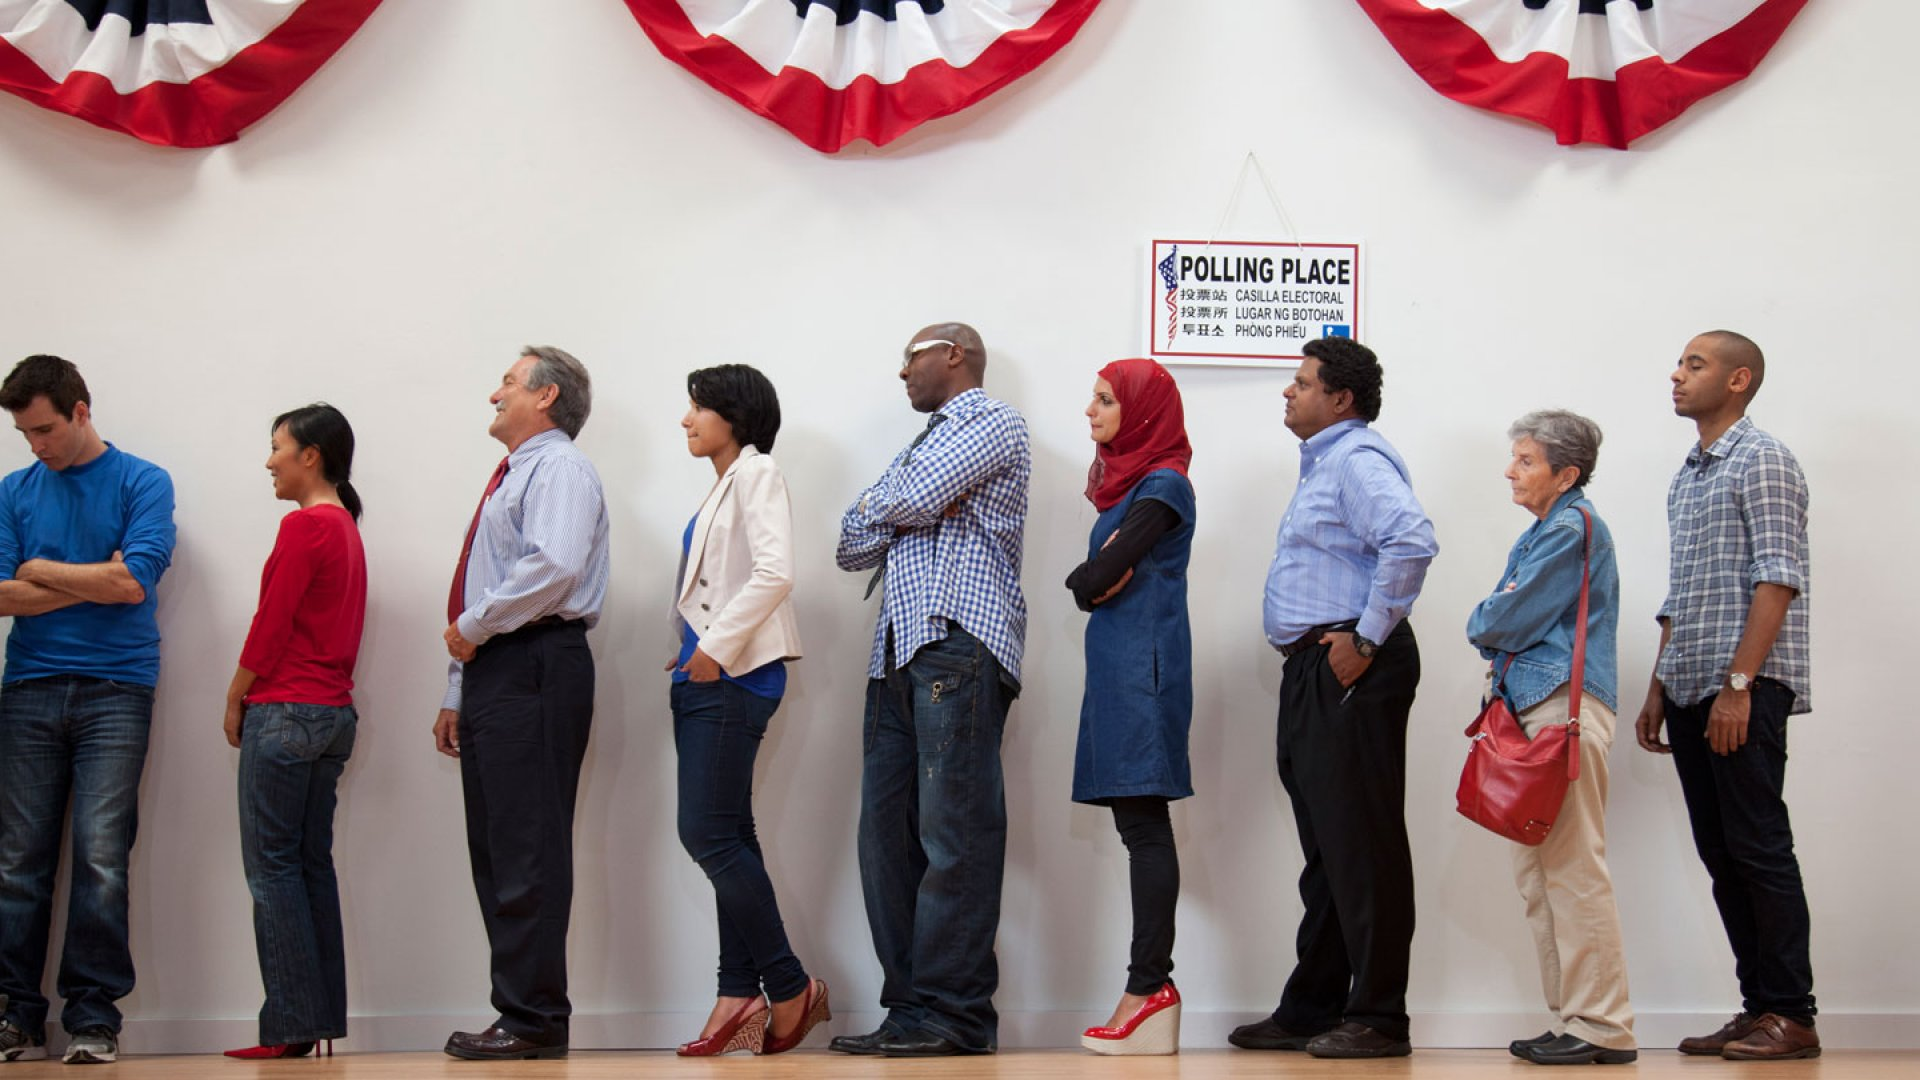 4 Lessons From Nate Silver's Election Predictions